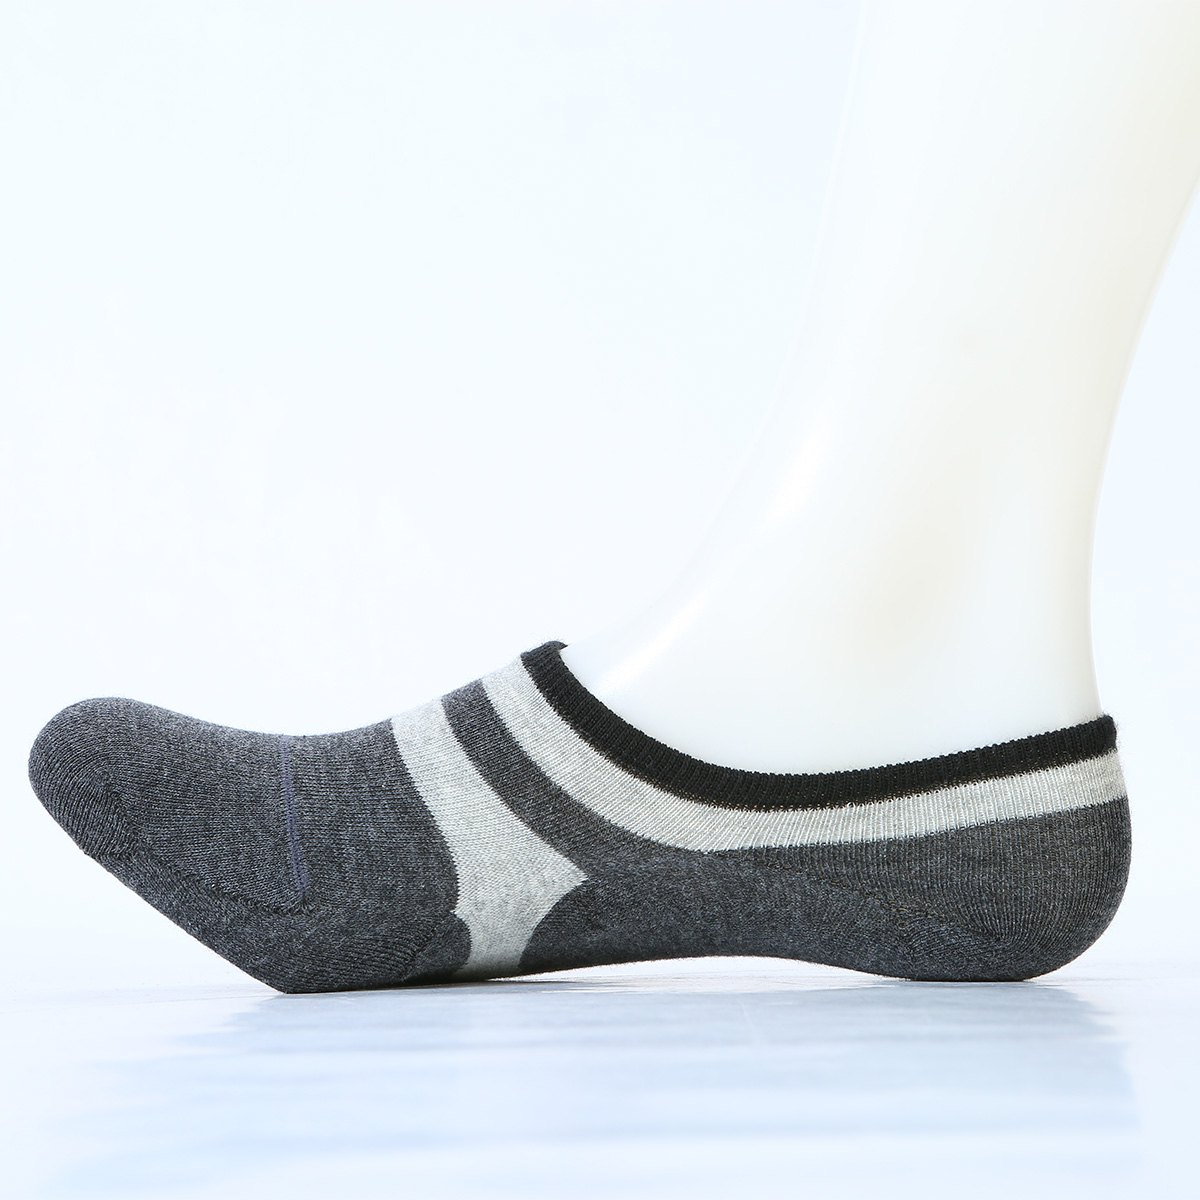 Pair of Stripe Pattern Embellished Cotton Ankle Socks - LIGHT GRAY ONE SIZE